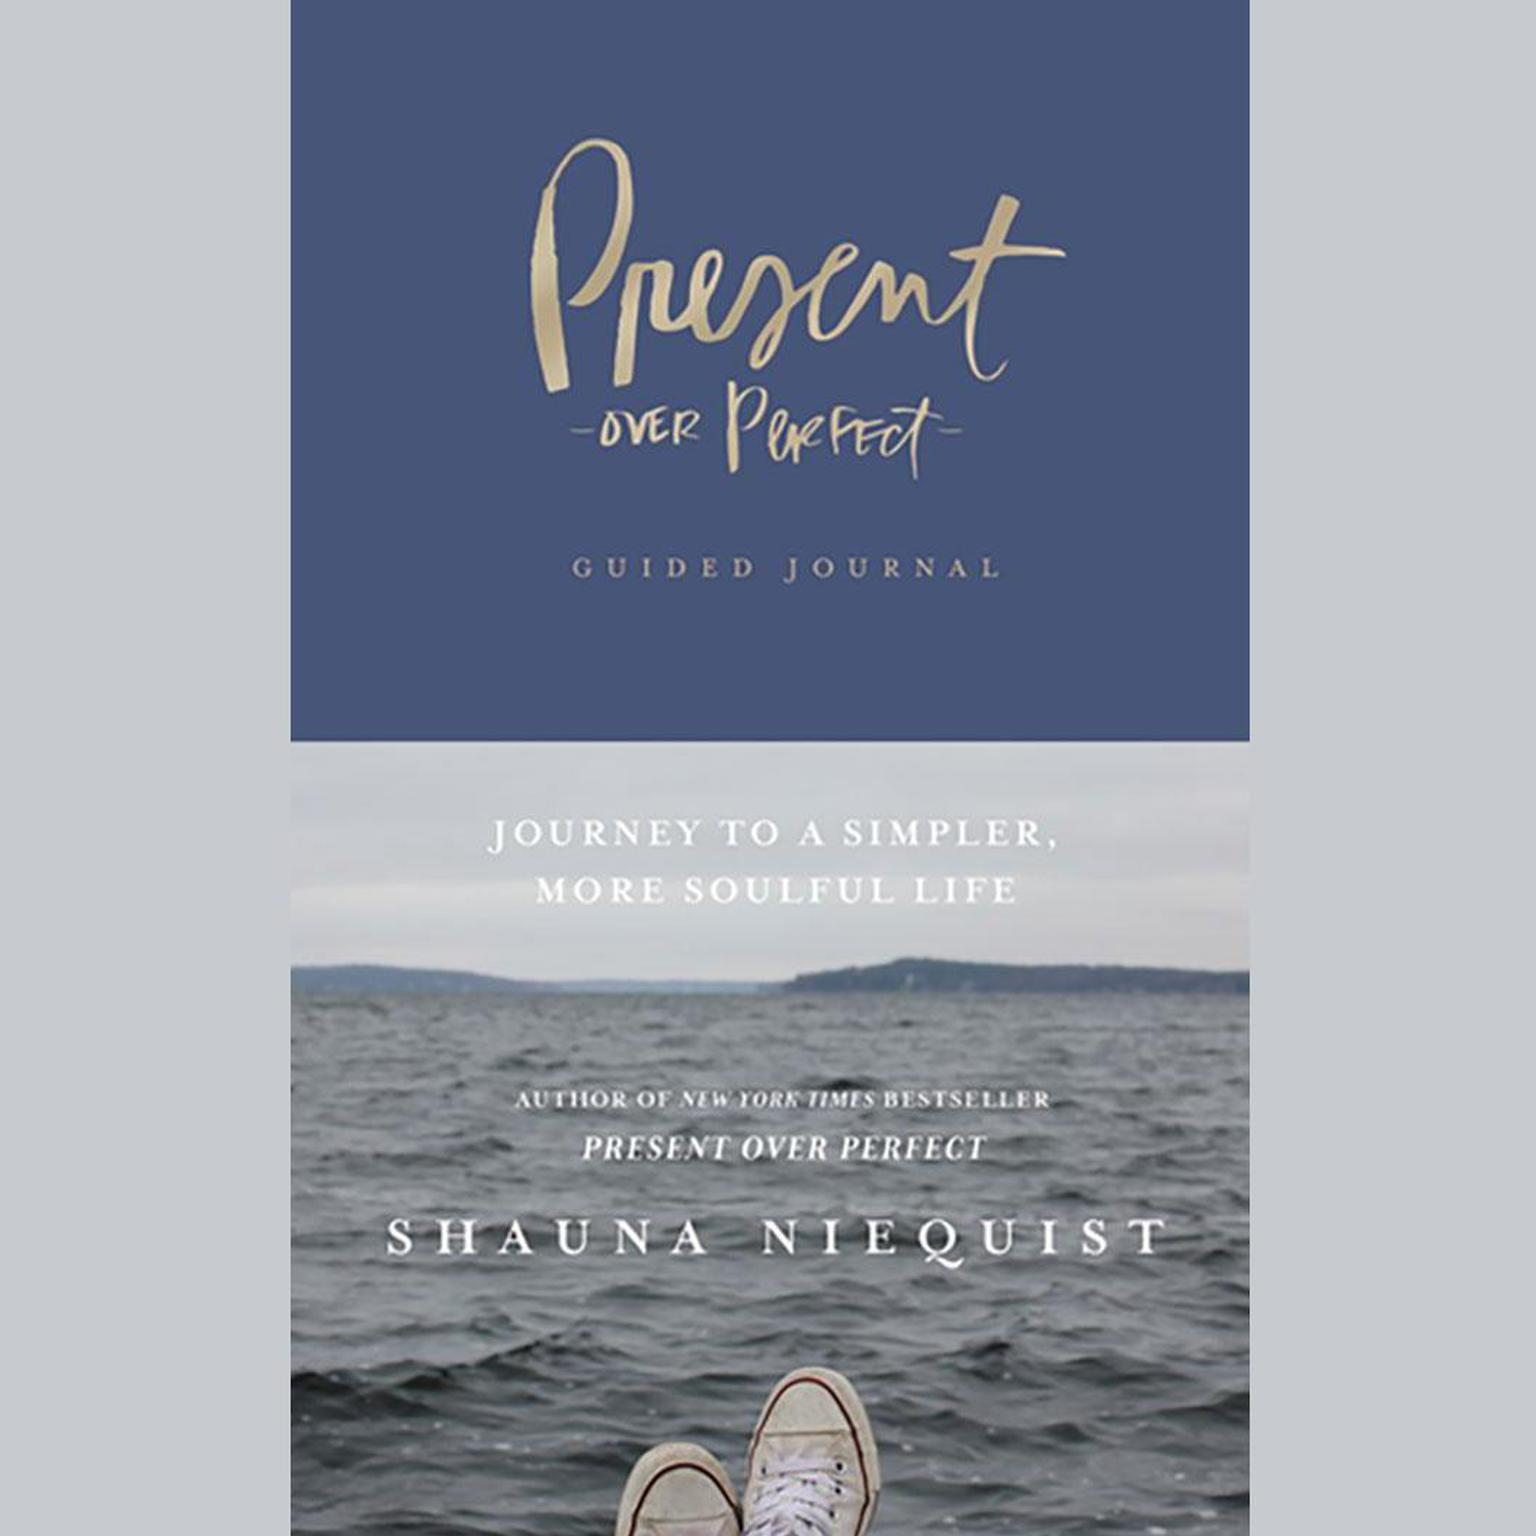 Present Over Perfect Guided Journal: Journey to a Simpler, More Soulful Life Audiobook, by Shauna Niequist